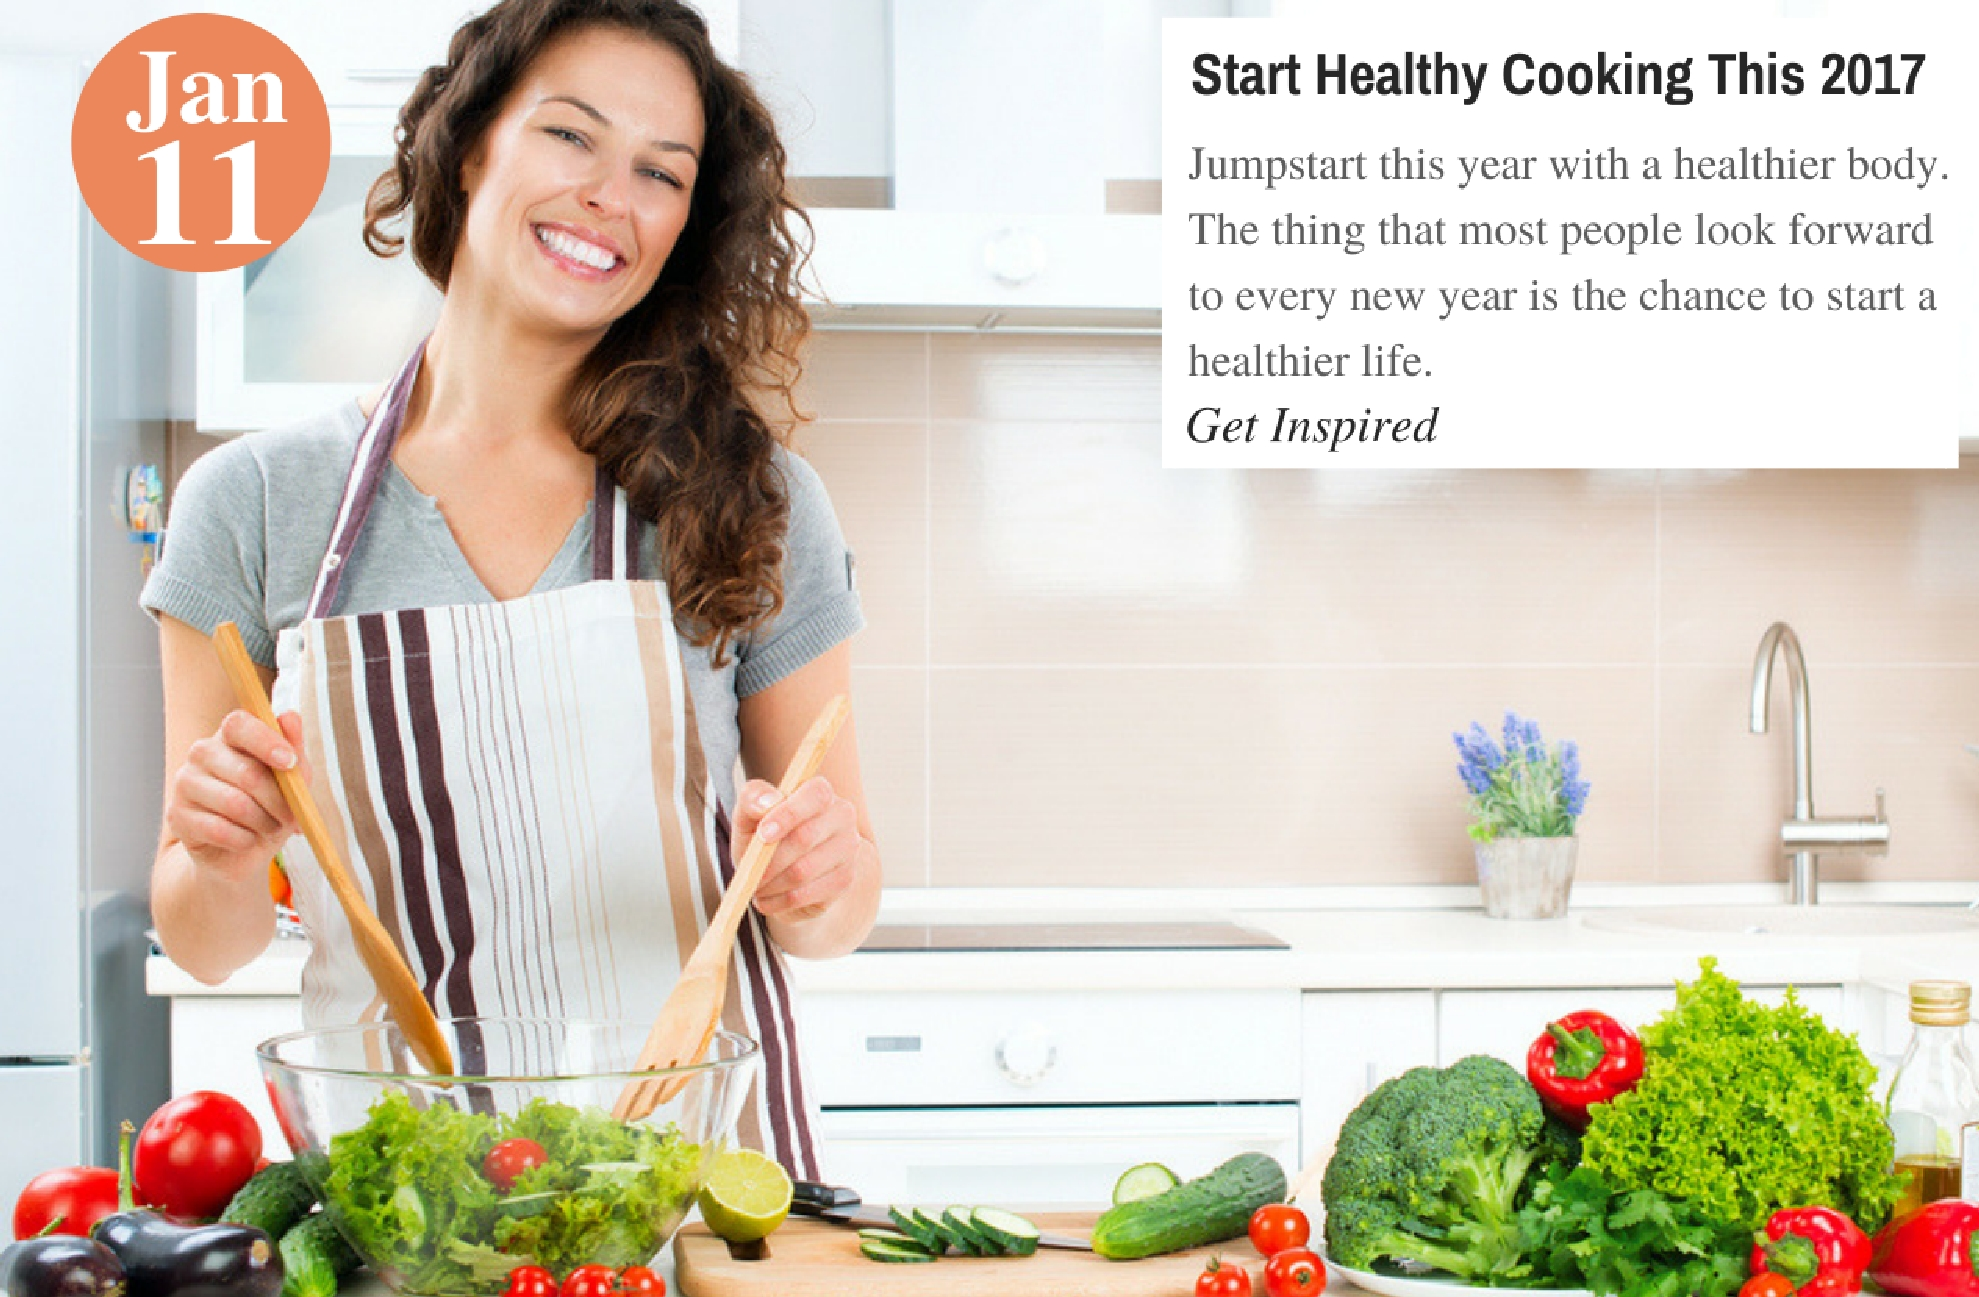 Start Healthy Cooking This 2017